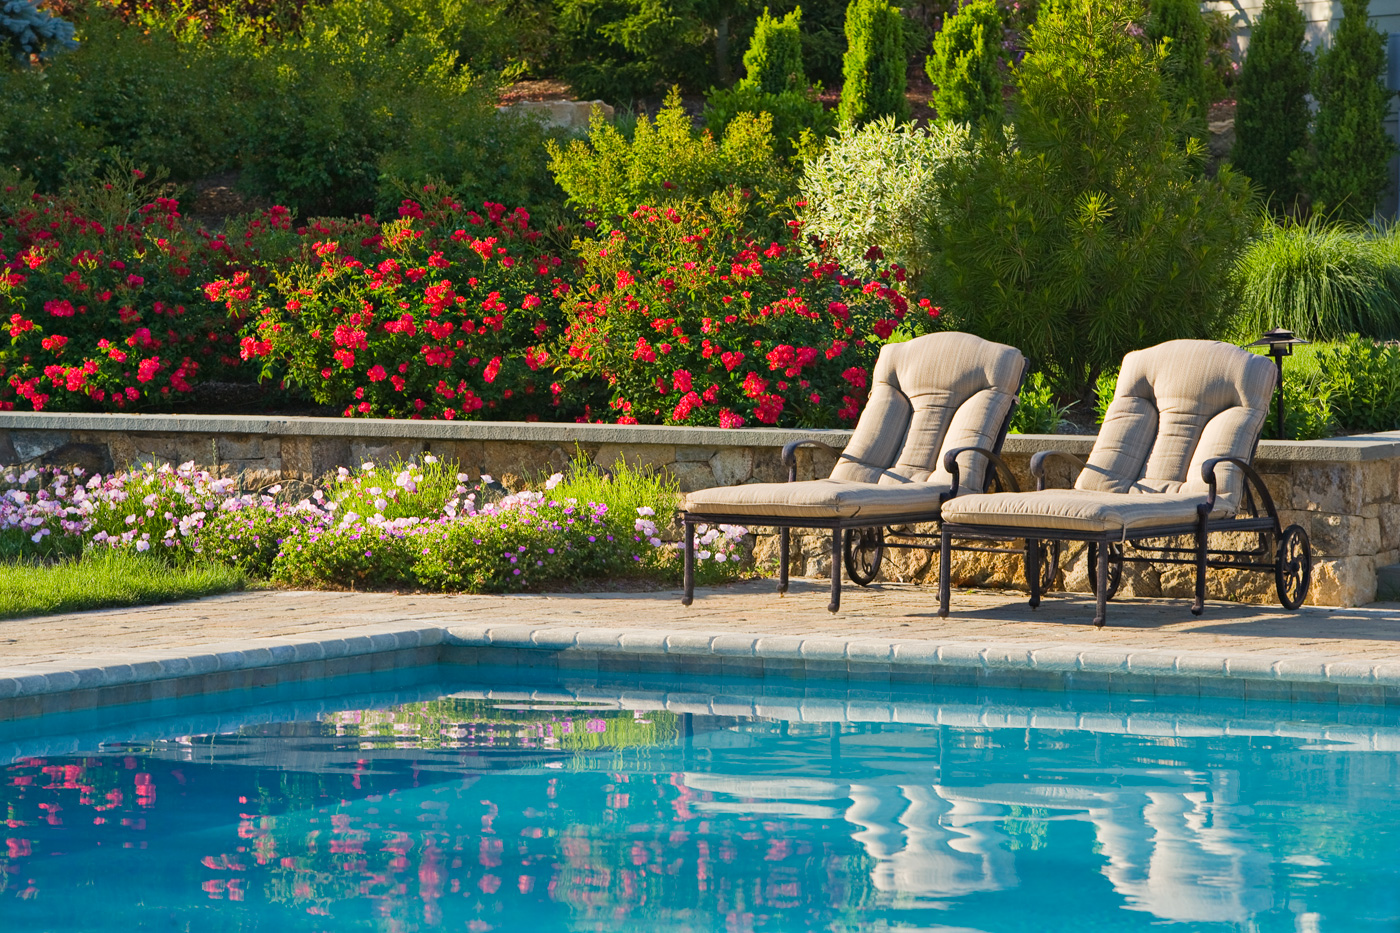 Desert garden ideas next to pools photograph formal swimmi for Garden city pool jobs